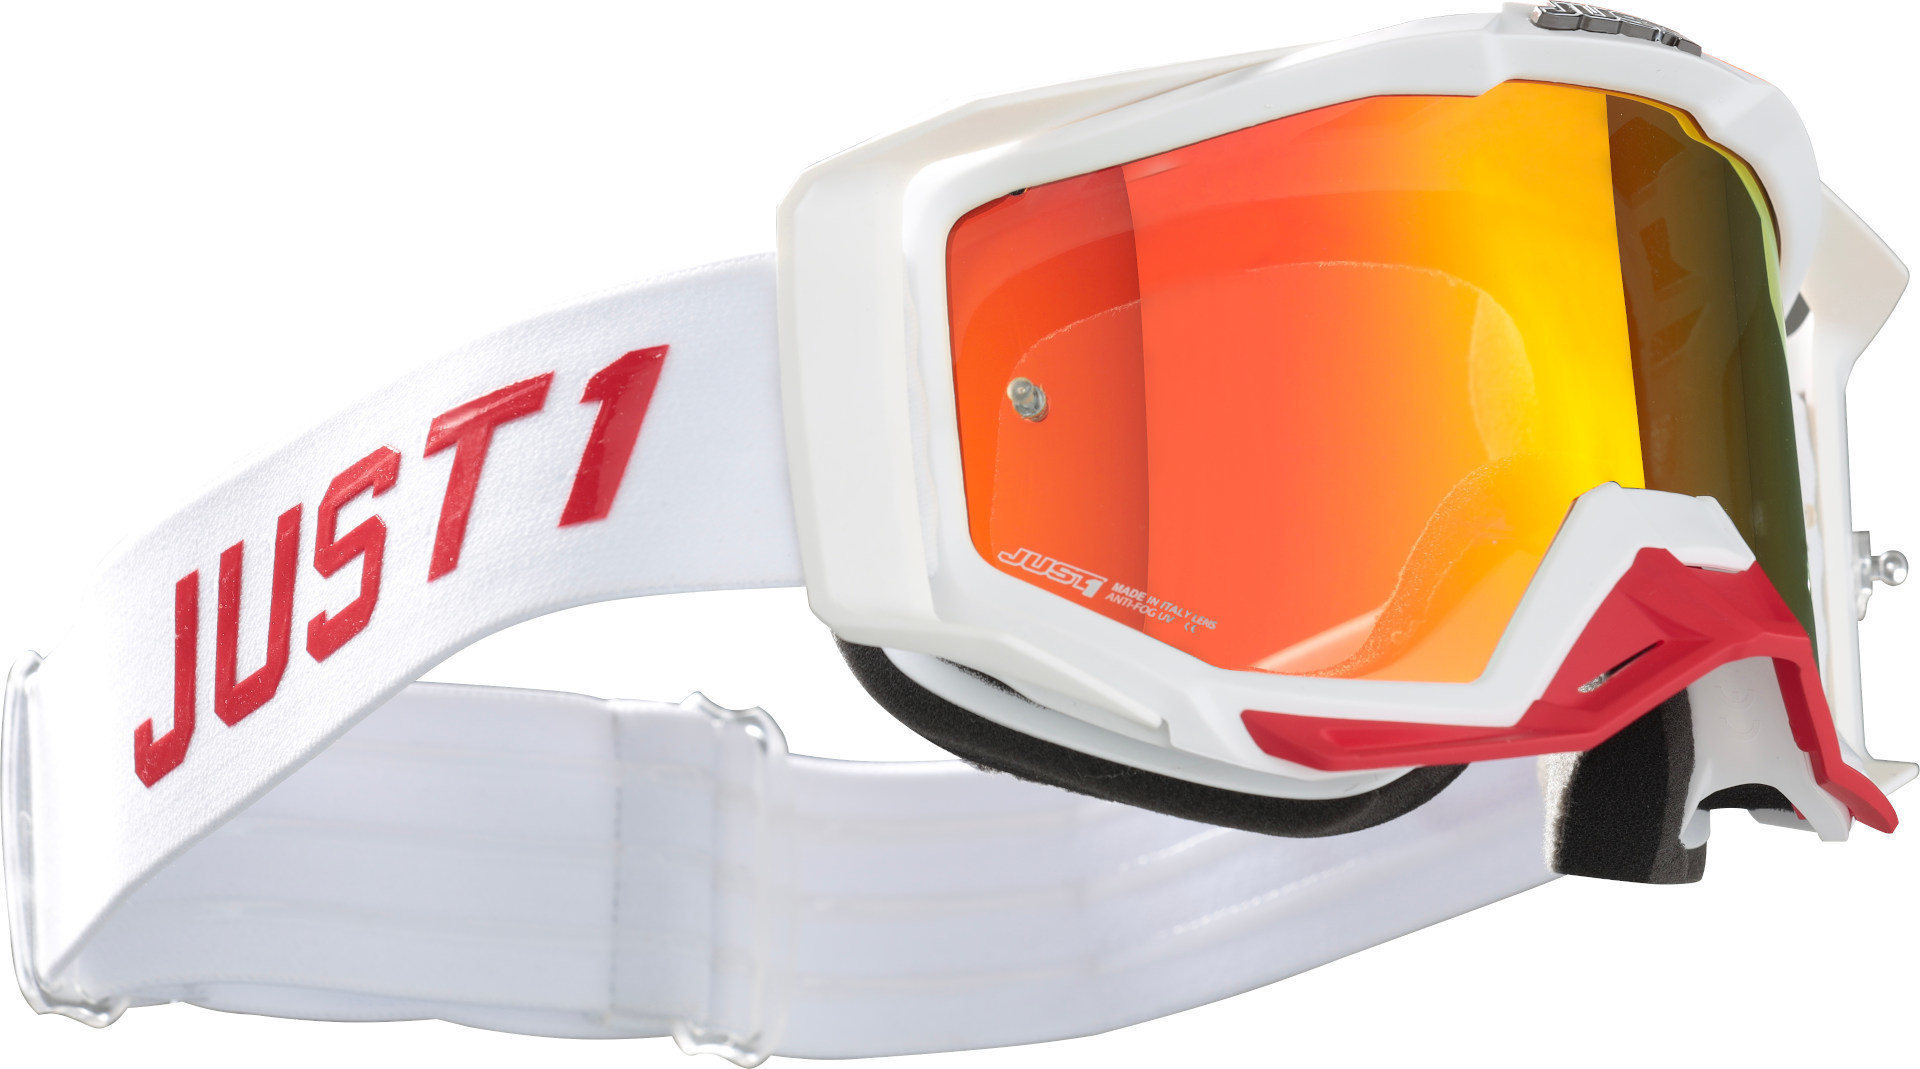 Just1 Iris Pulsar Goggles White/Red Image